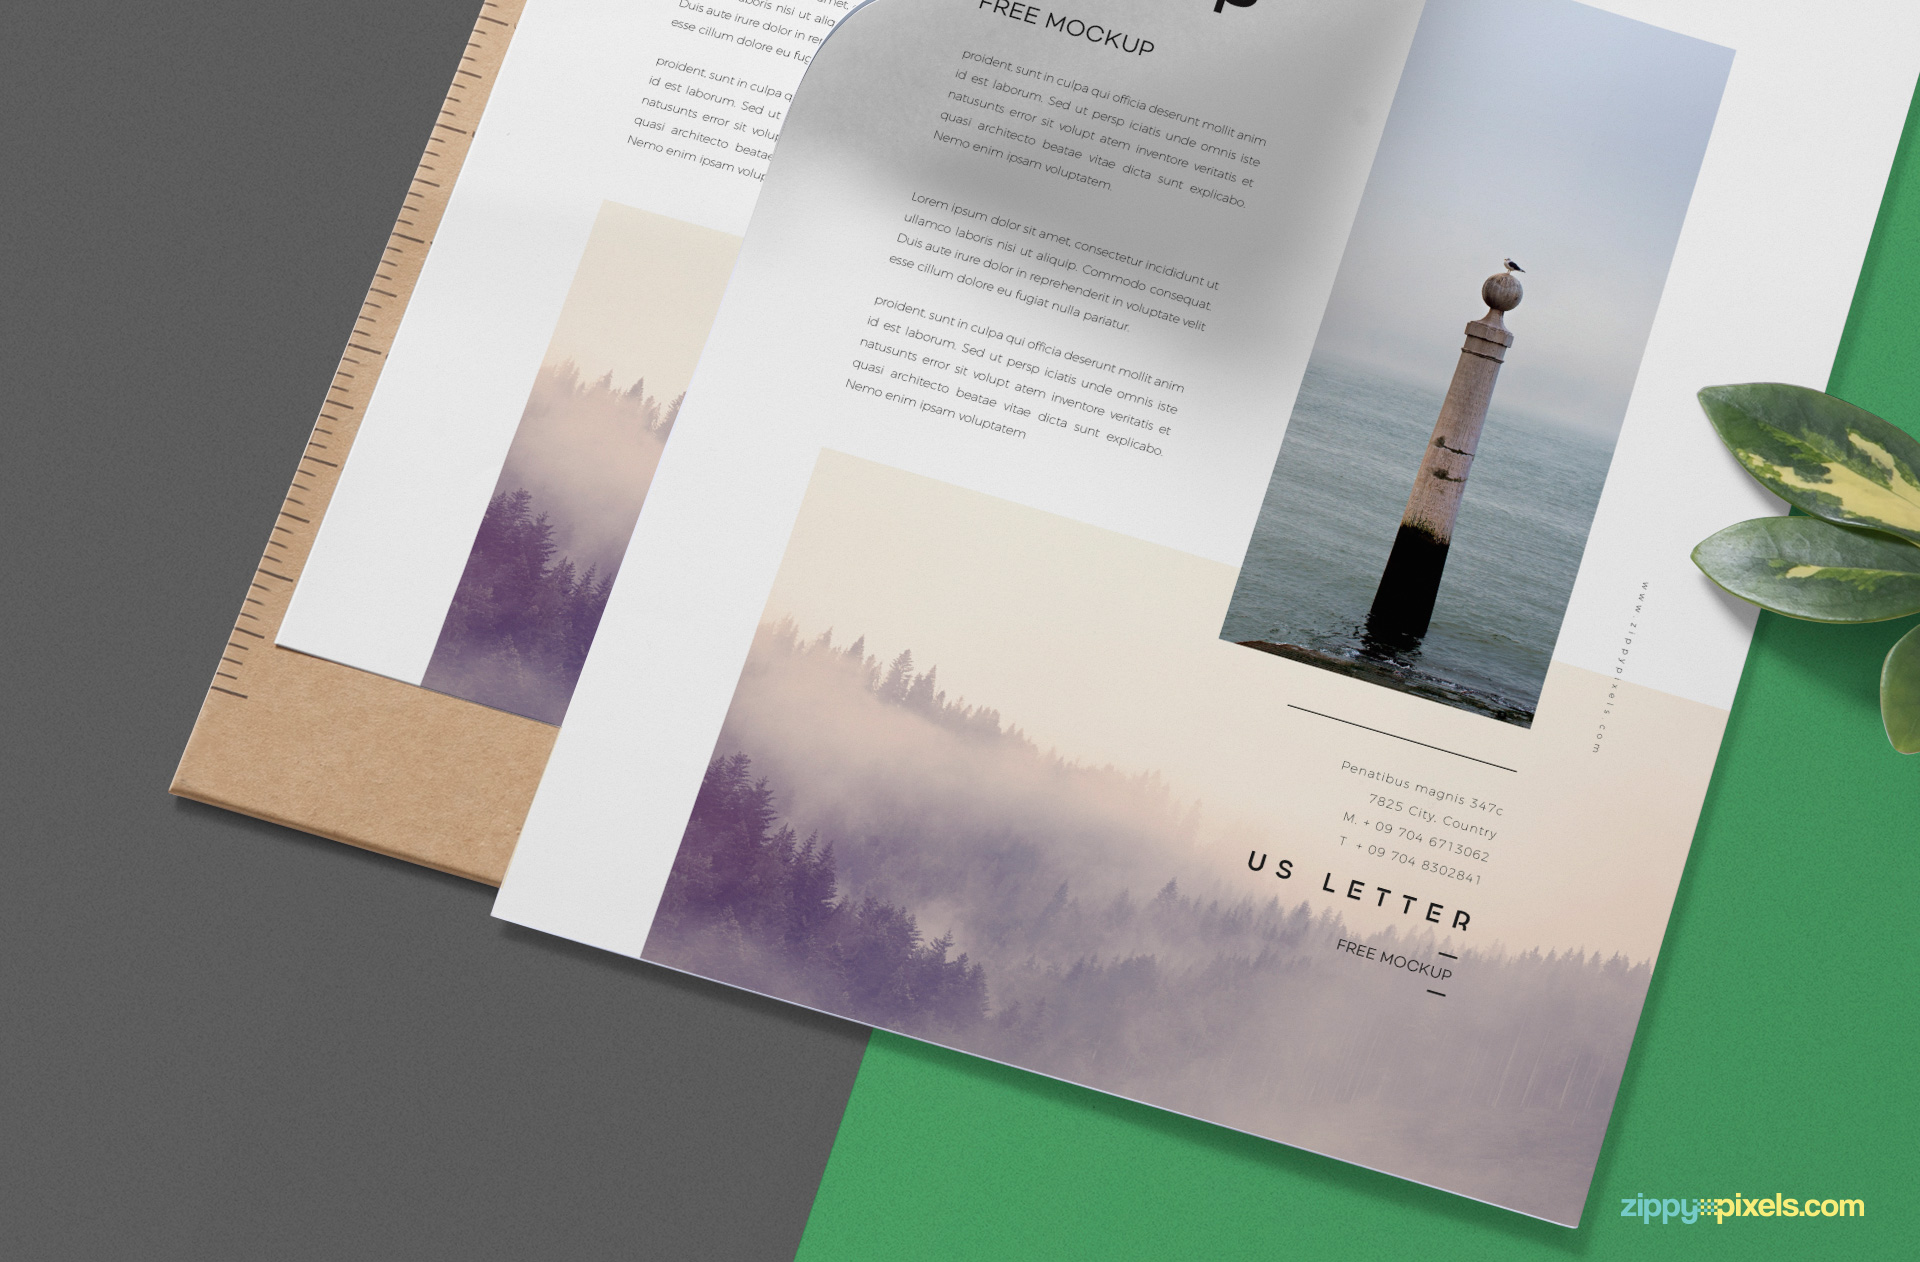 Clipboard under the letterhead mockup has the changeable color option.